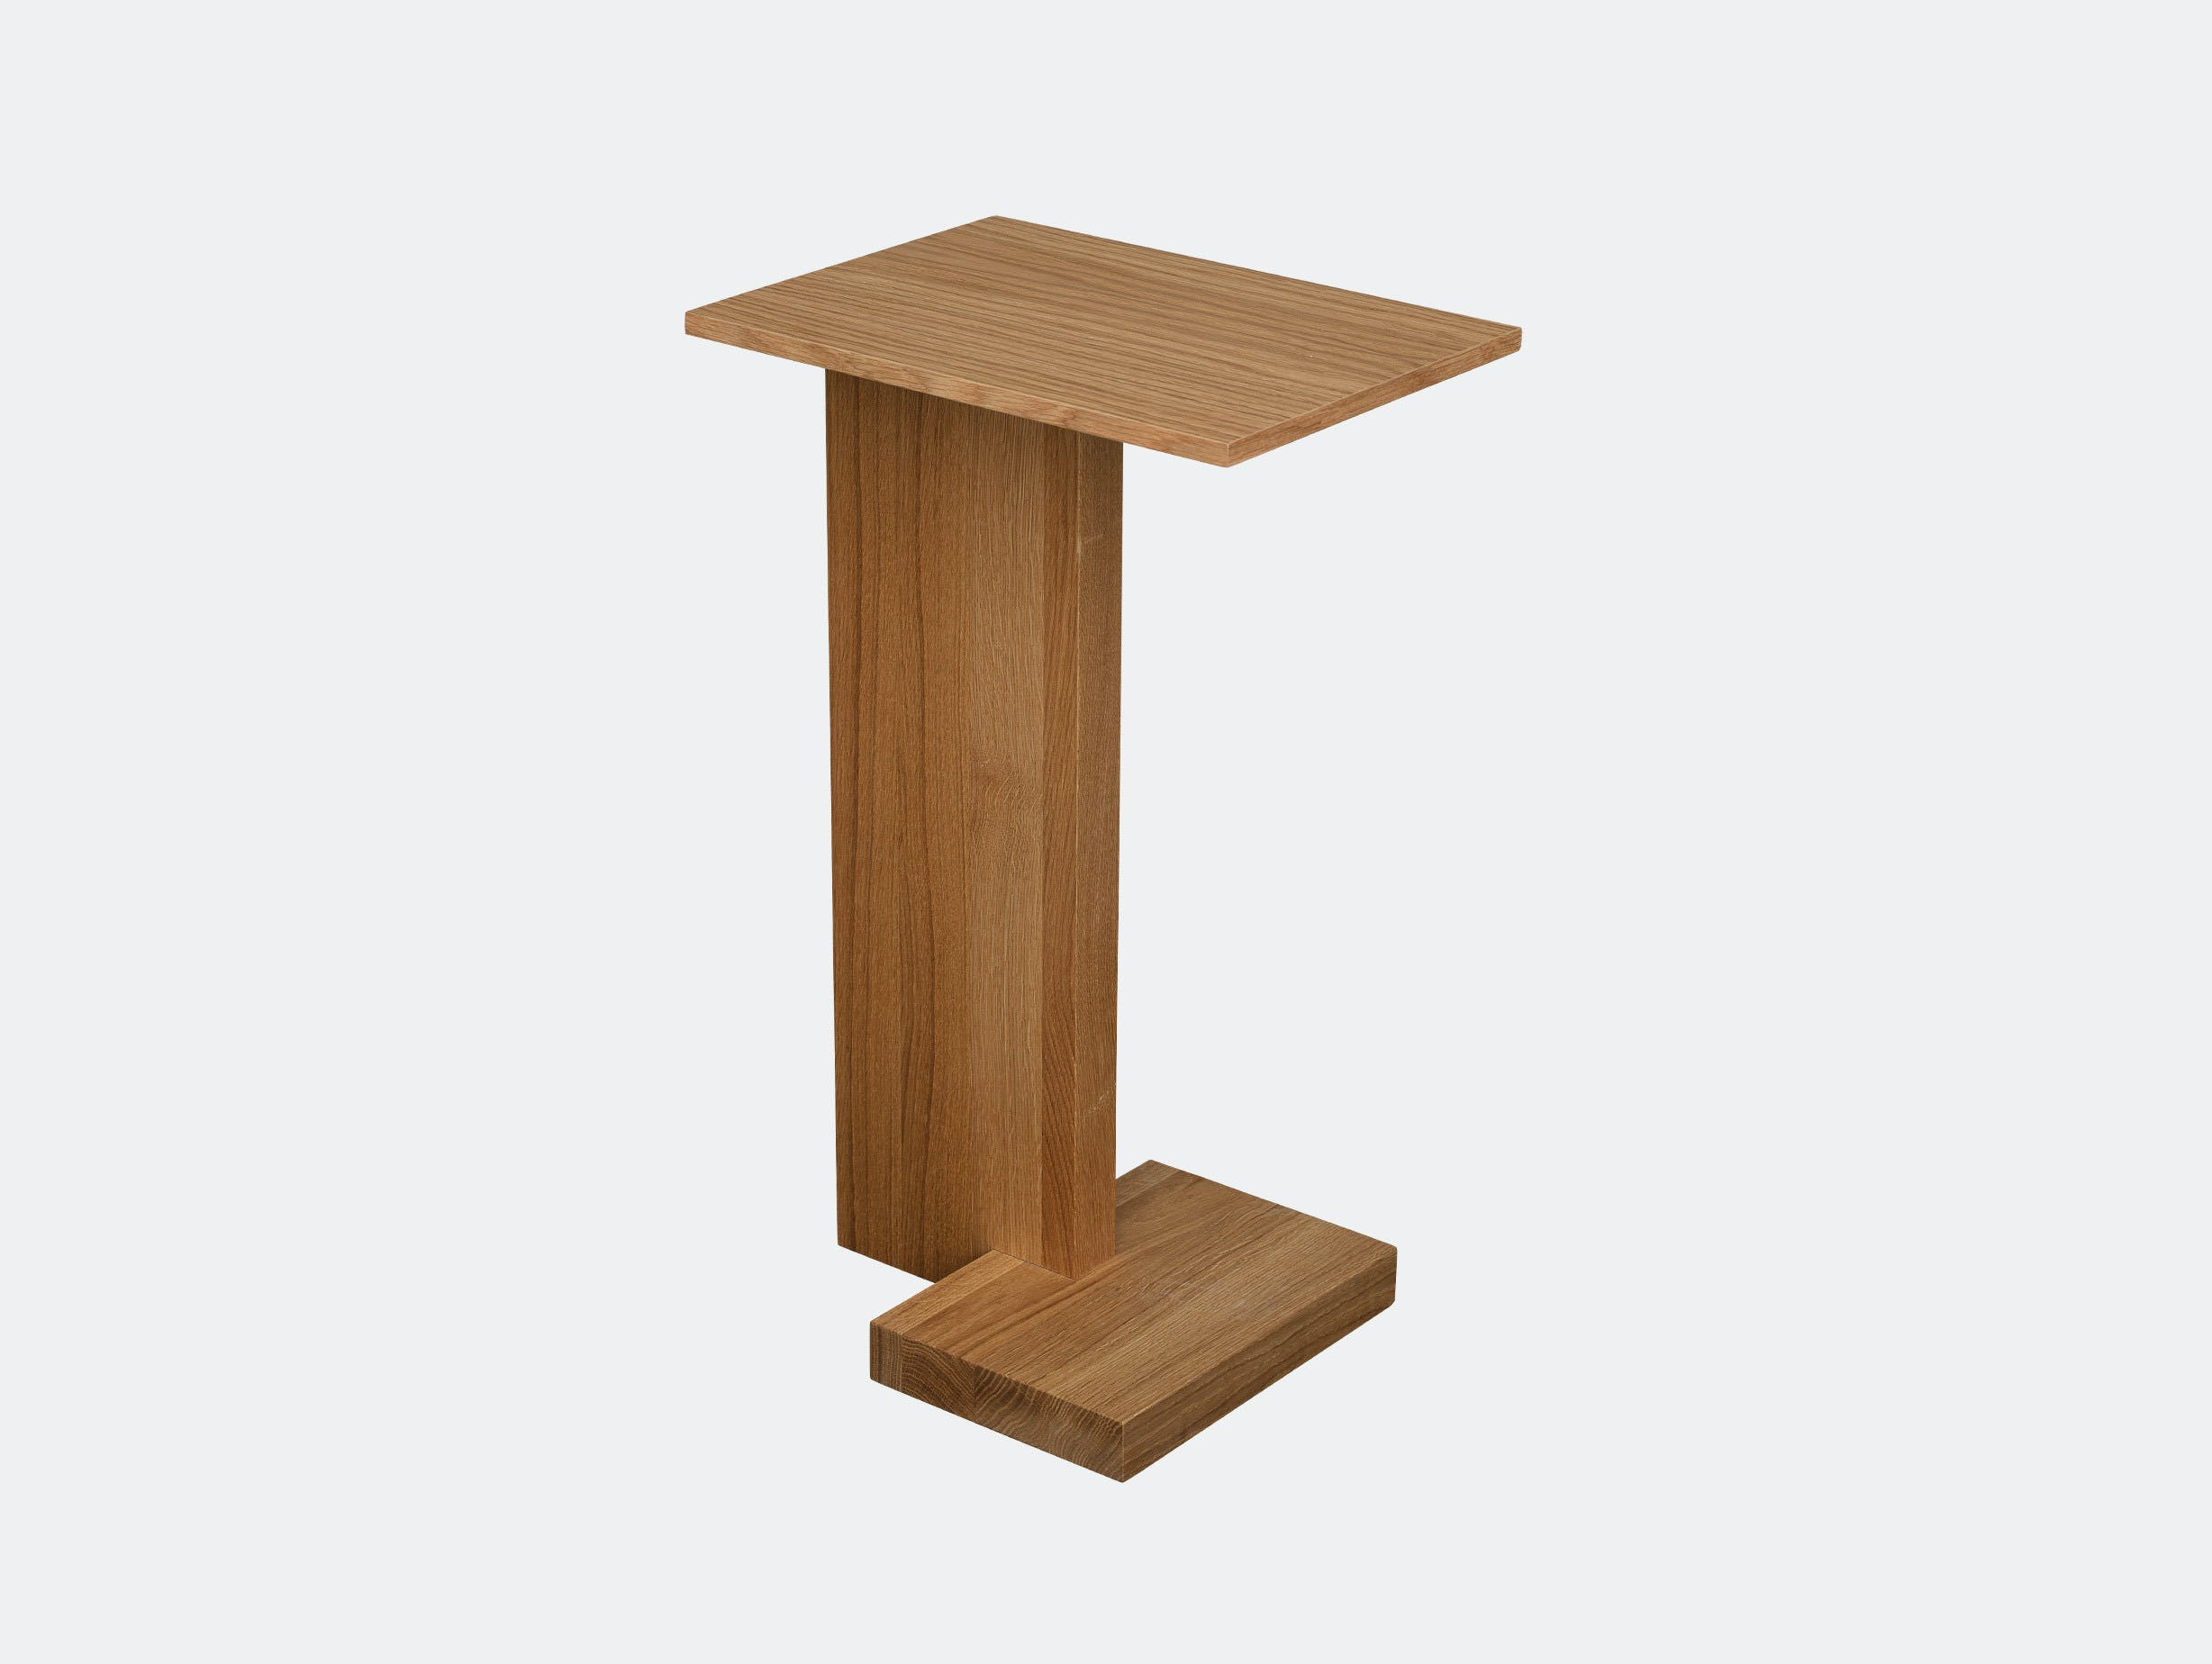 Fogia supersolid object 5 oak